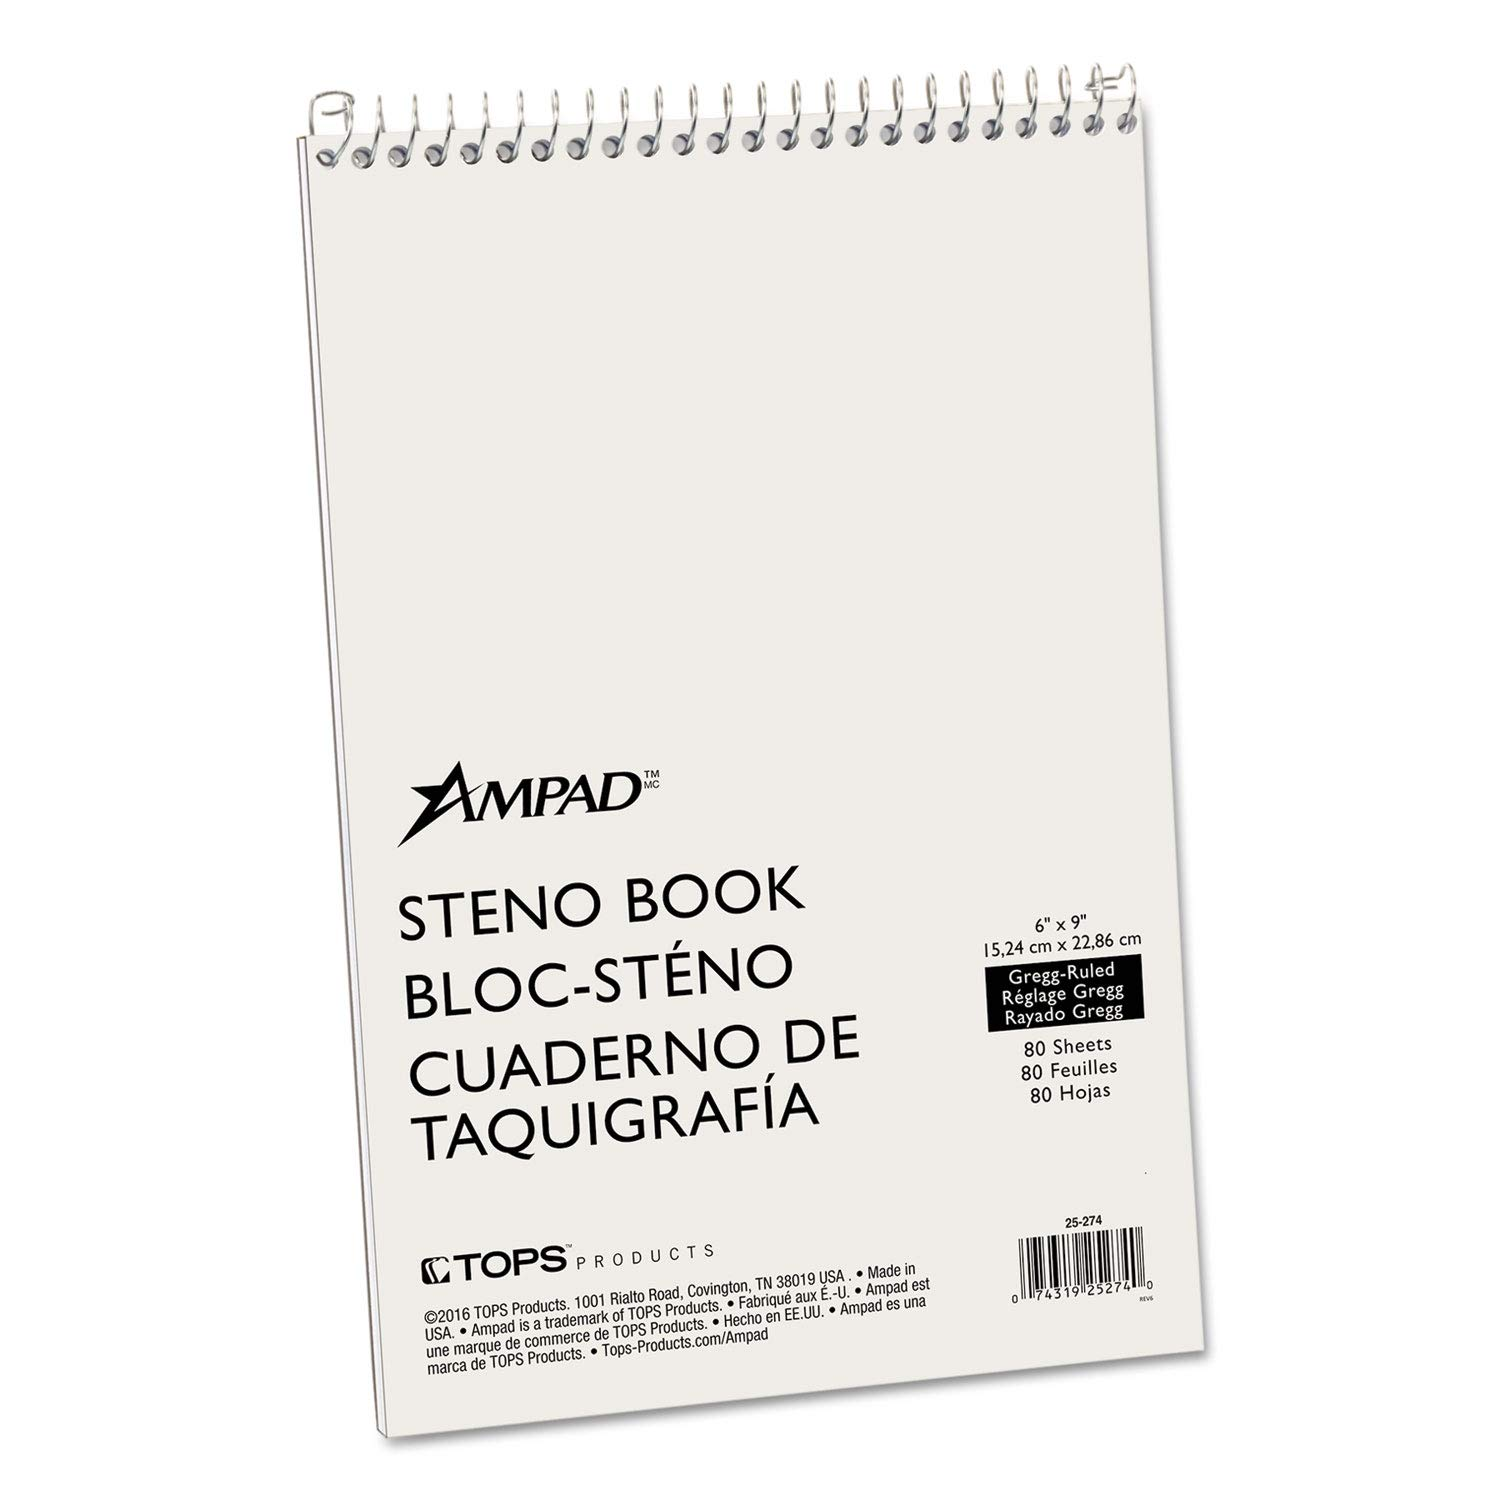 Ampad Spiral Steno Book, Gregg, 6 x 9, 15 lb, Green Tint, 80 Sheets - 25-274 (Pack of 10) by Ampad (Image #1)